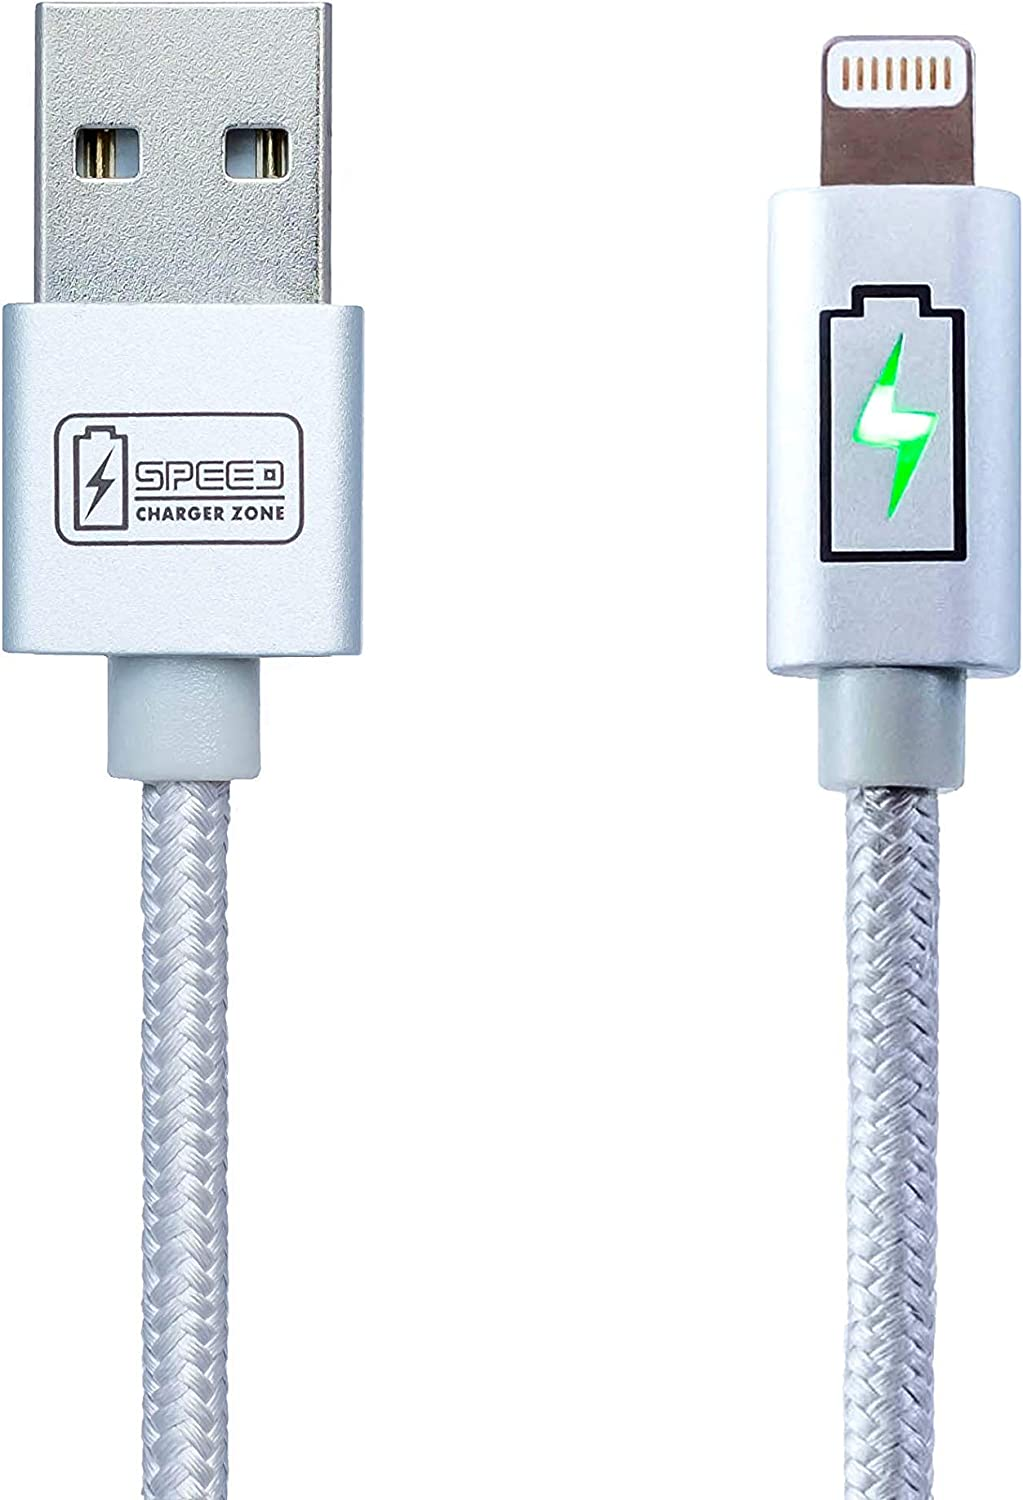 Speed Charger Zone Lightning to USB Charger Cable Silver | Smart LED Indicator, Fast Charging, Made for iPhone (MFI): 11/Pro/Pro Max, X/XS/XR/Plus, 8/Plus, 7/Plus, and More!